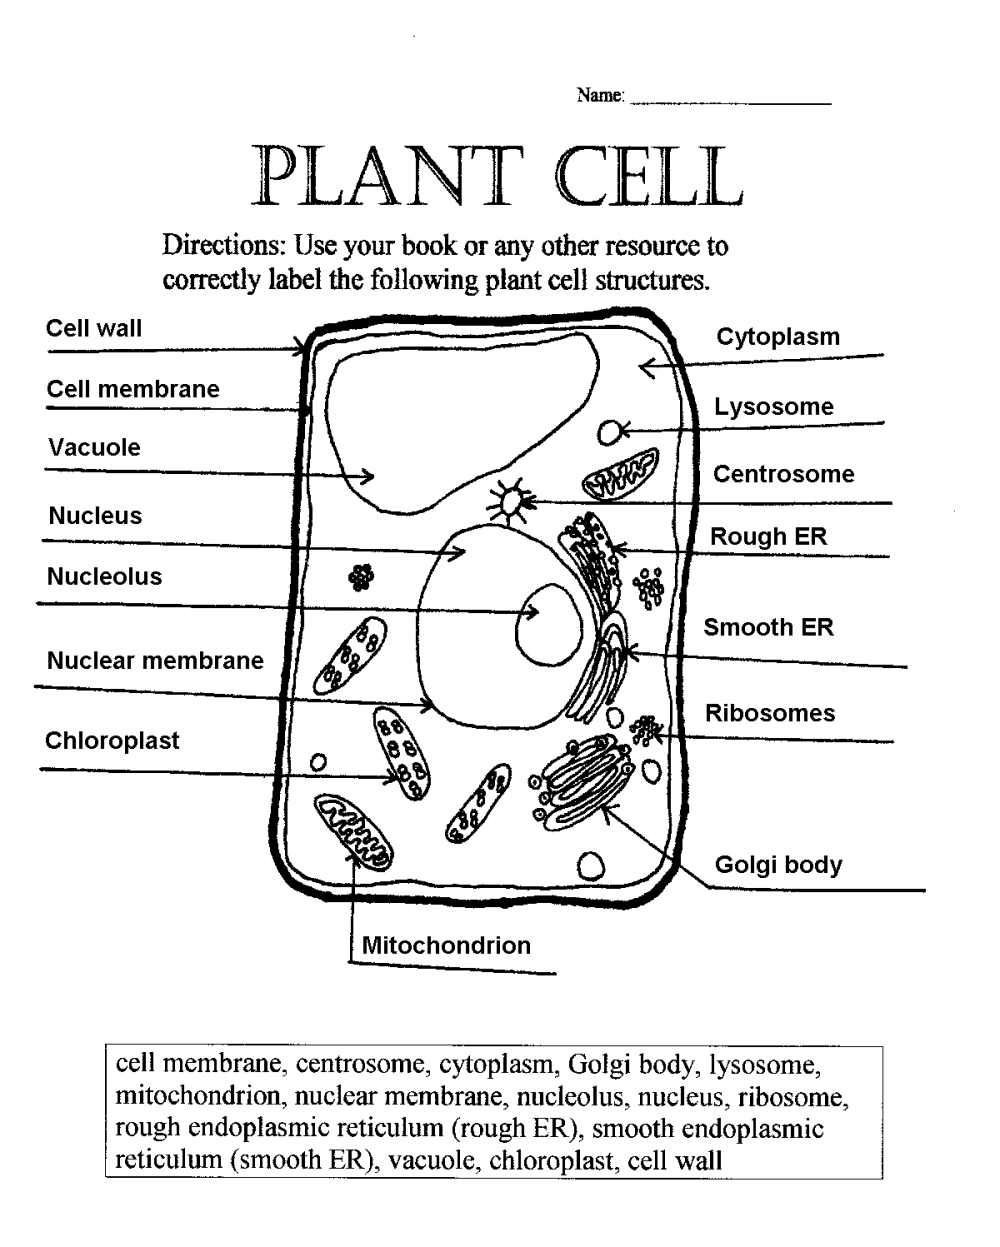 medium resolution of 35 Plant Cell Worksheets To Label - Labels Database 2020